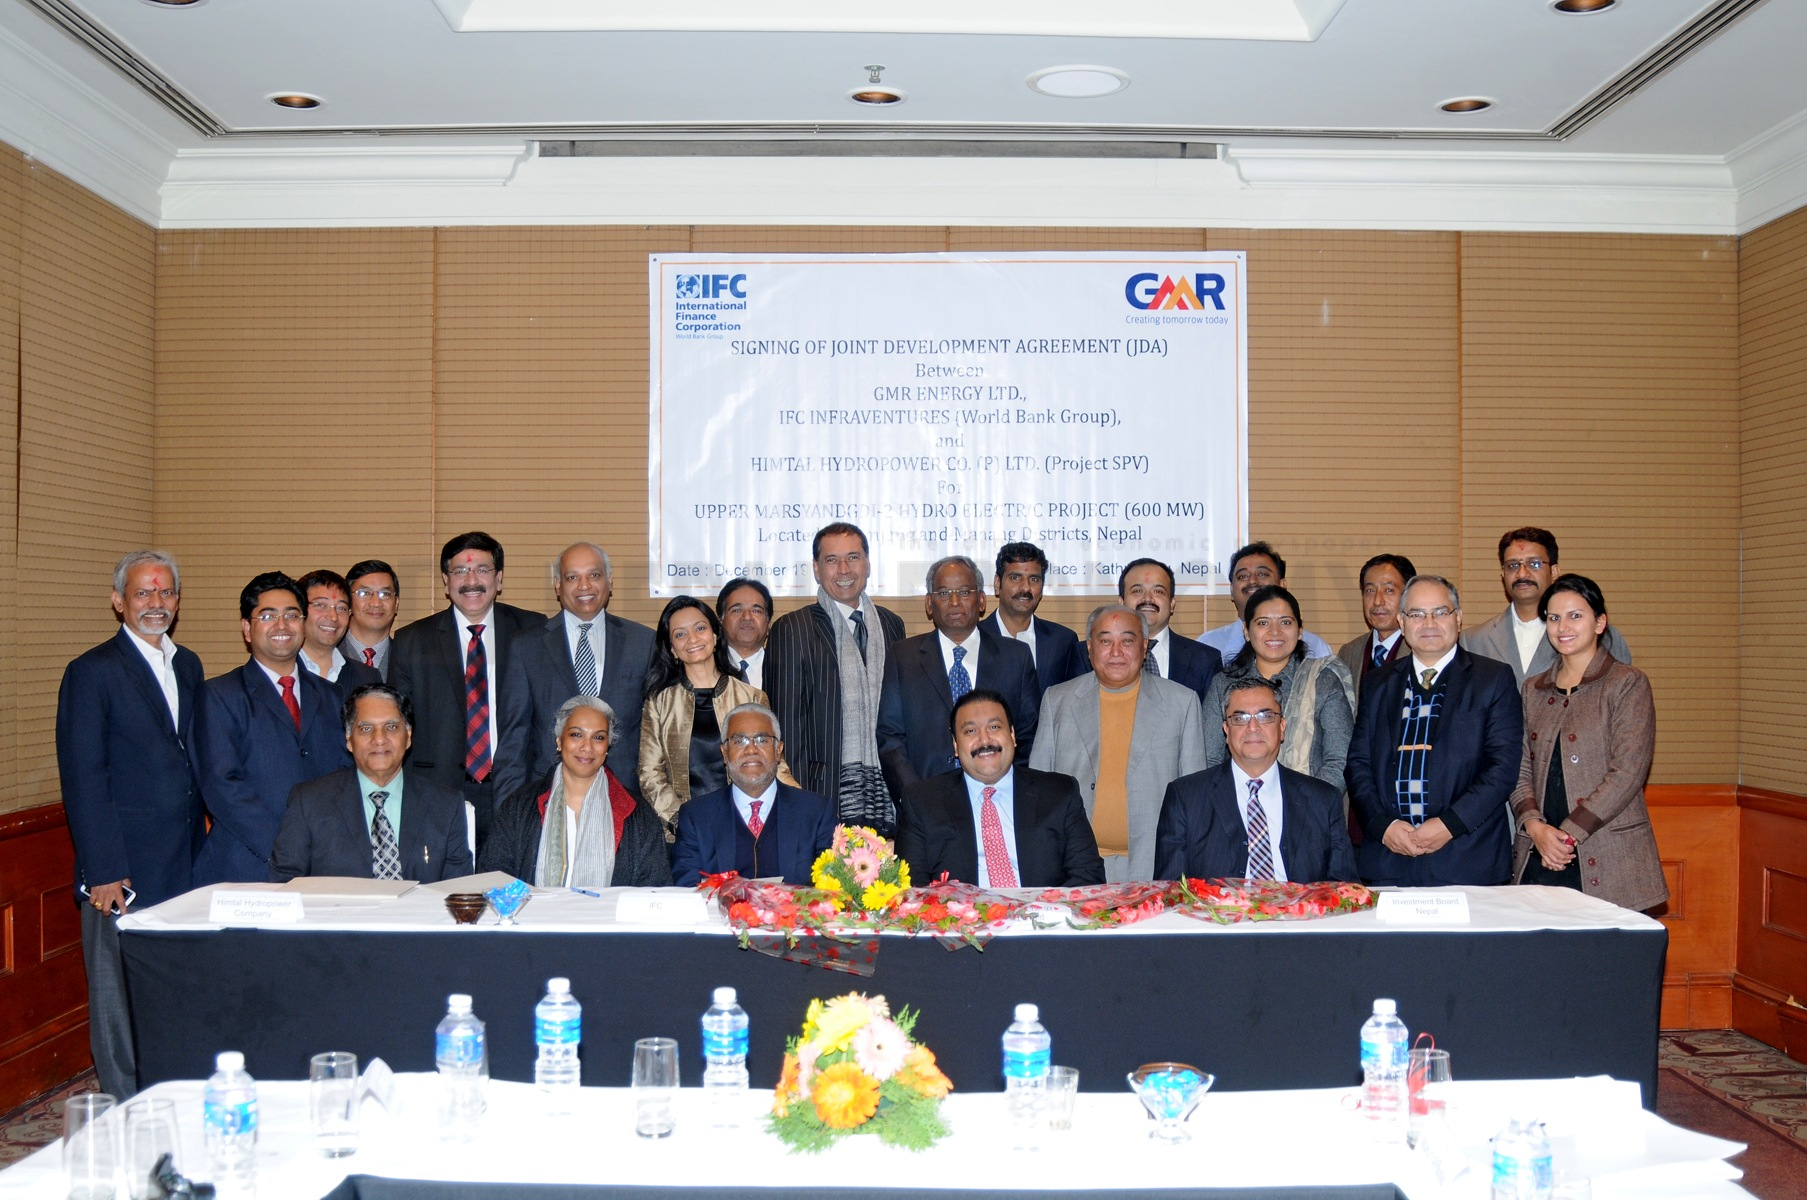 GMR signs joint development accord with IFC for hydropower development in Nepal